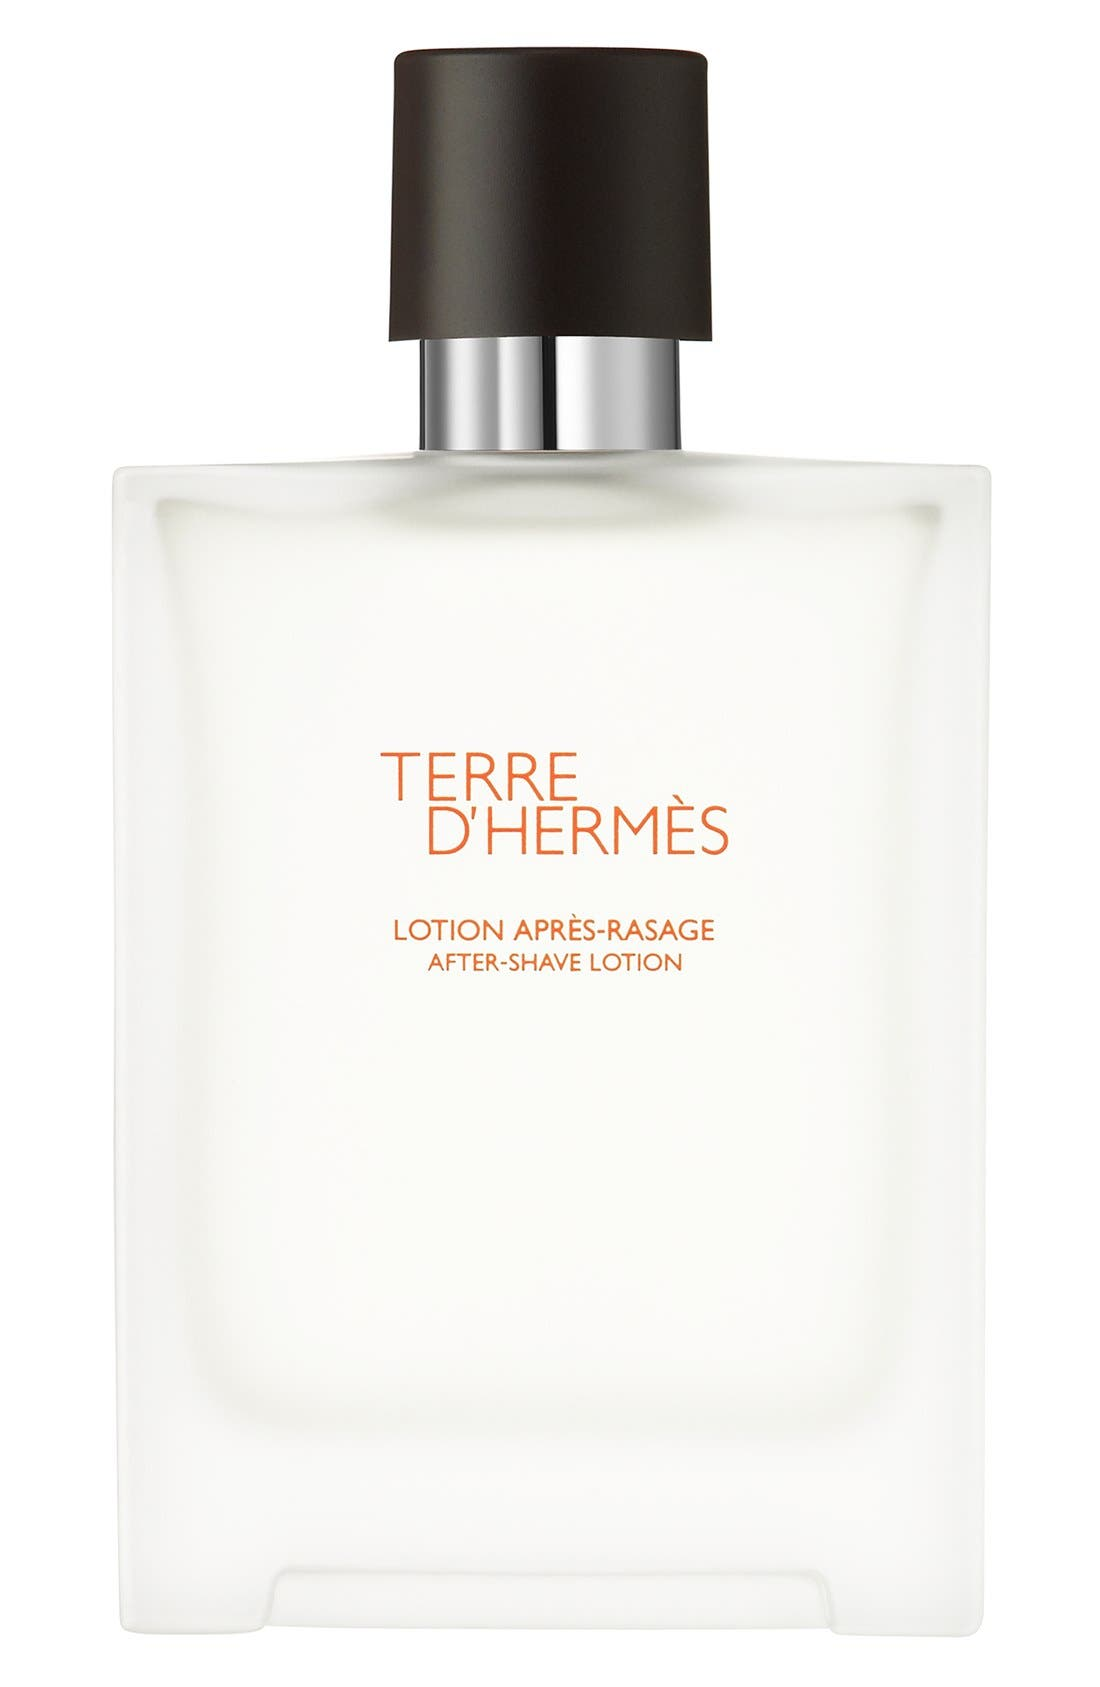 Hermès Terre d'Hermès - After-shave lotion